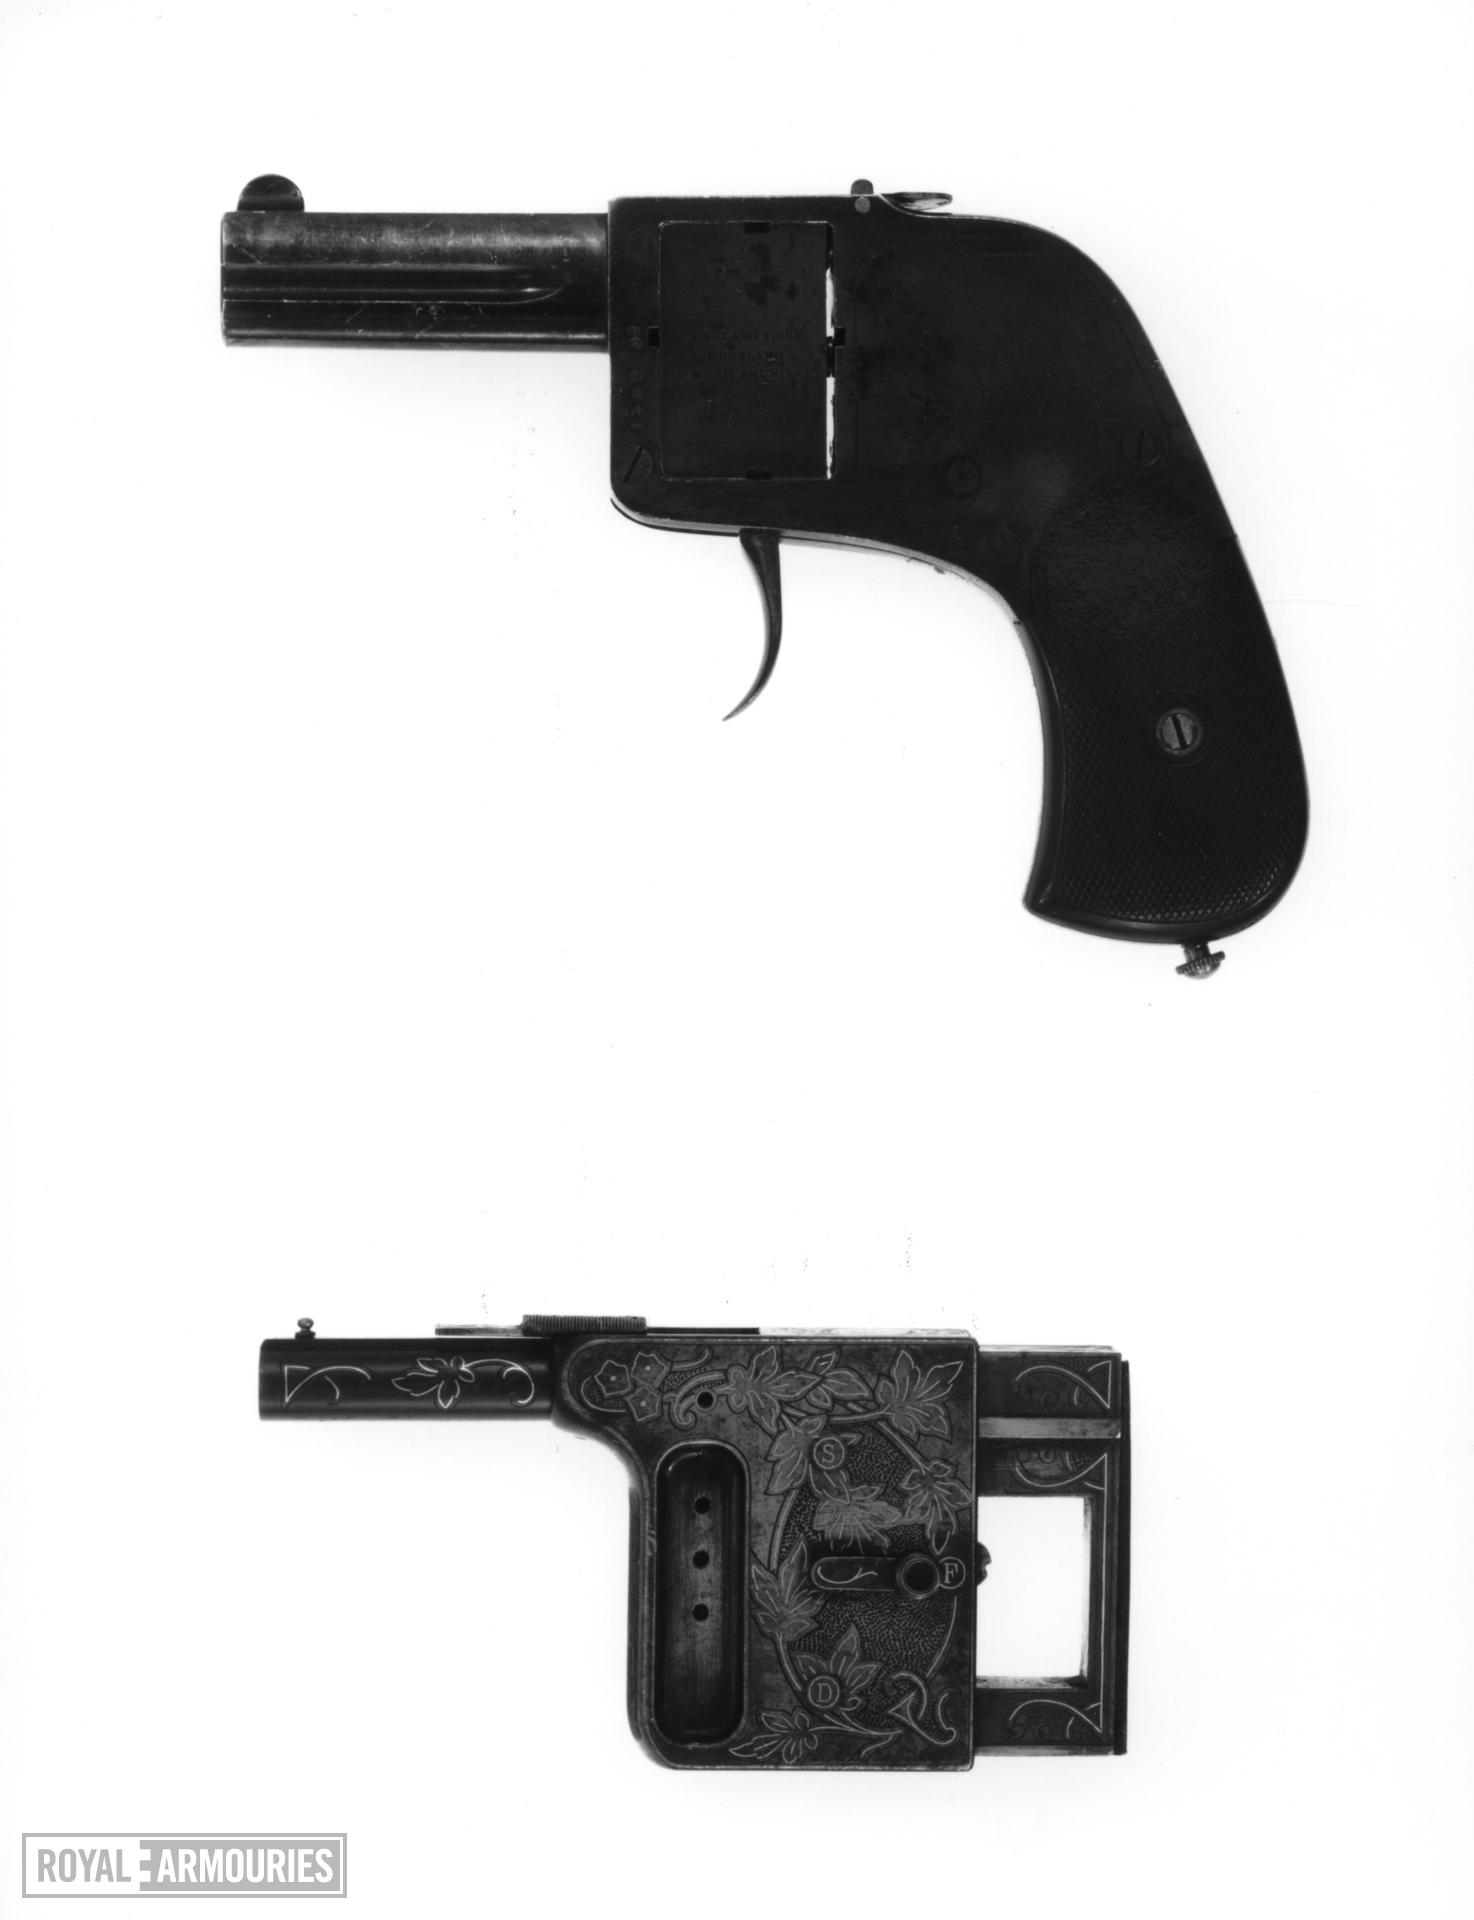 Centrefire self-loading palm pistol - The Gaulois